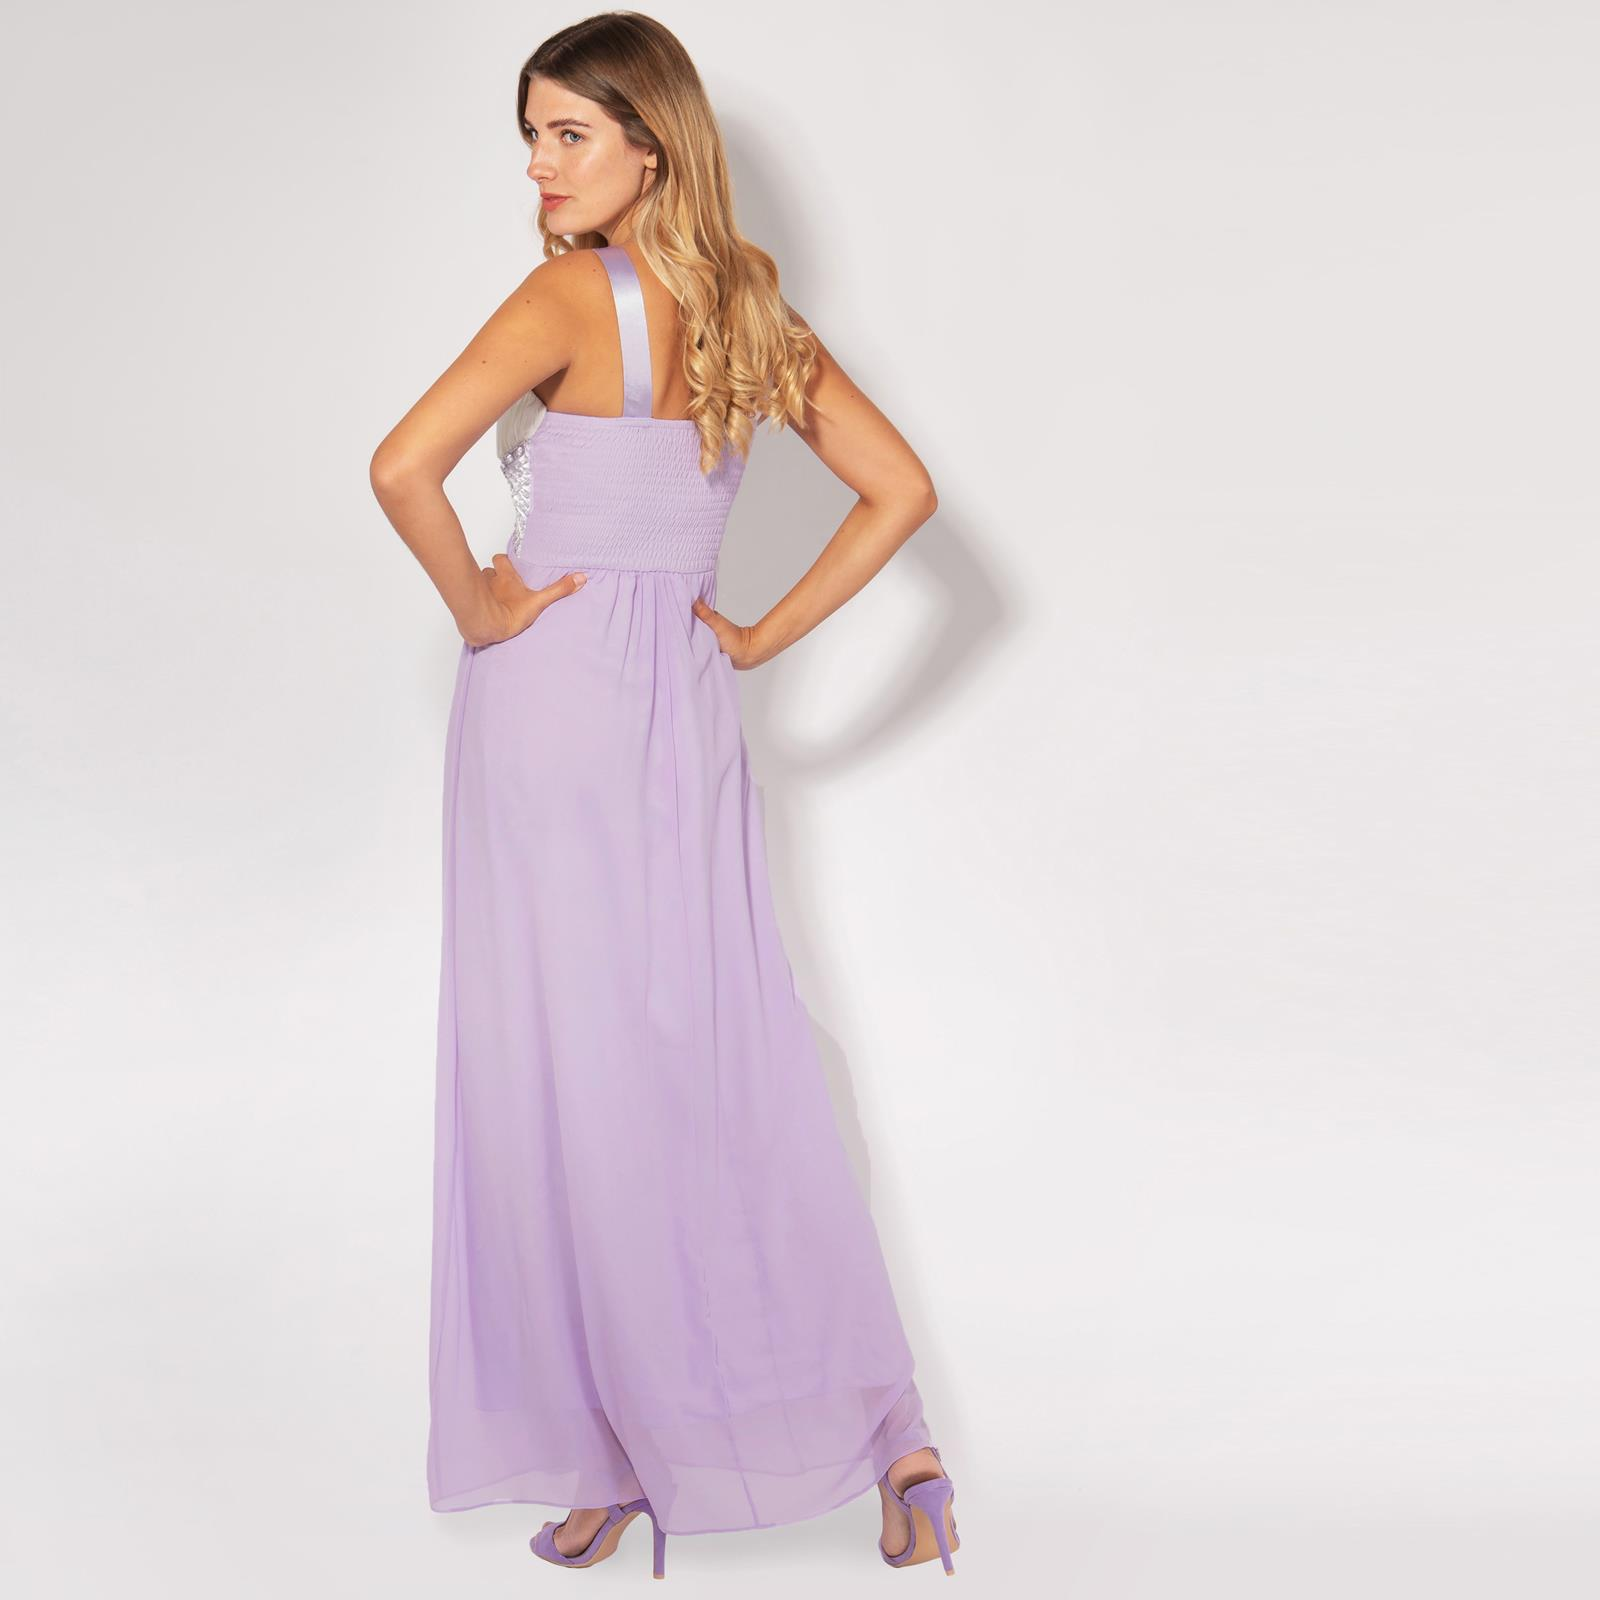 Women-Formal-Diamante-Wedding-Cocktail-Dress-Long-Ball-Gown-Prom-Maxi-Party-8-18 thumbnail 10